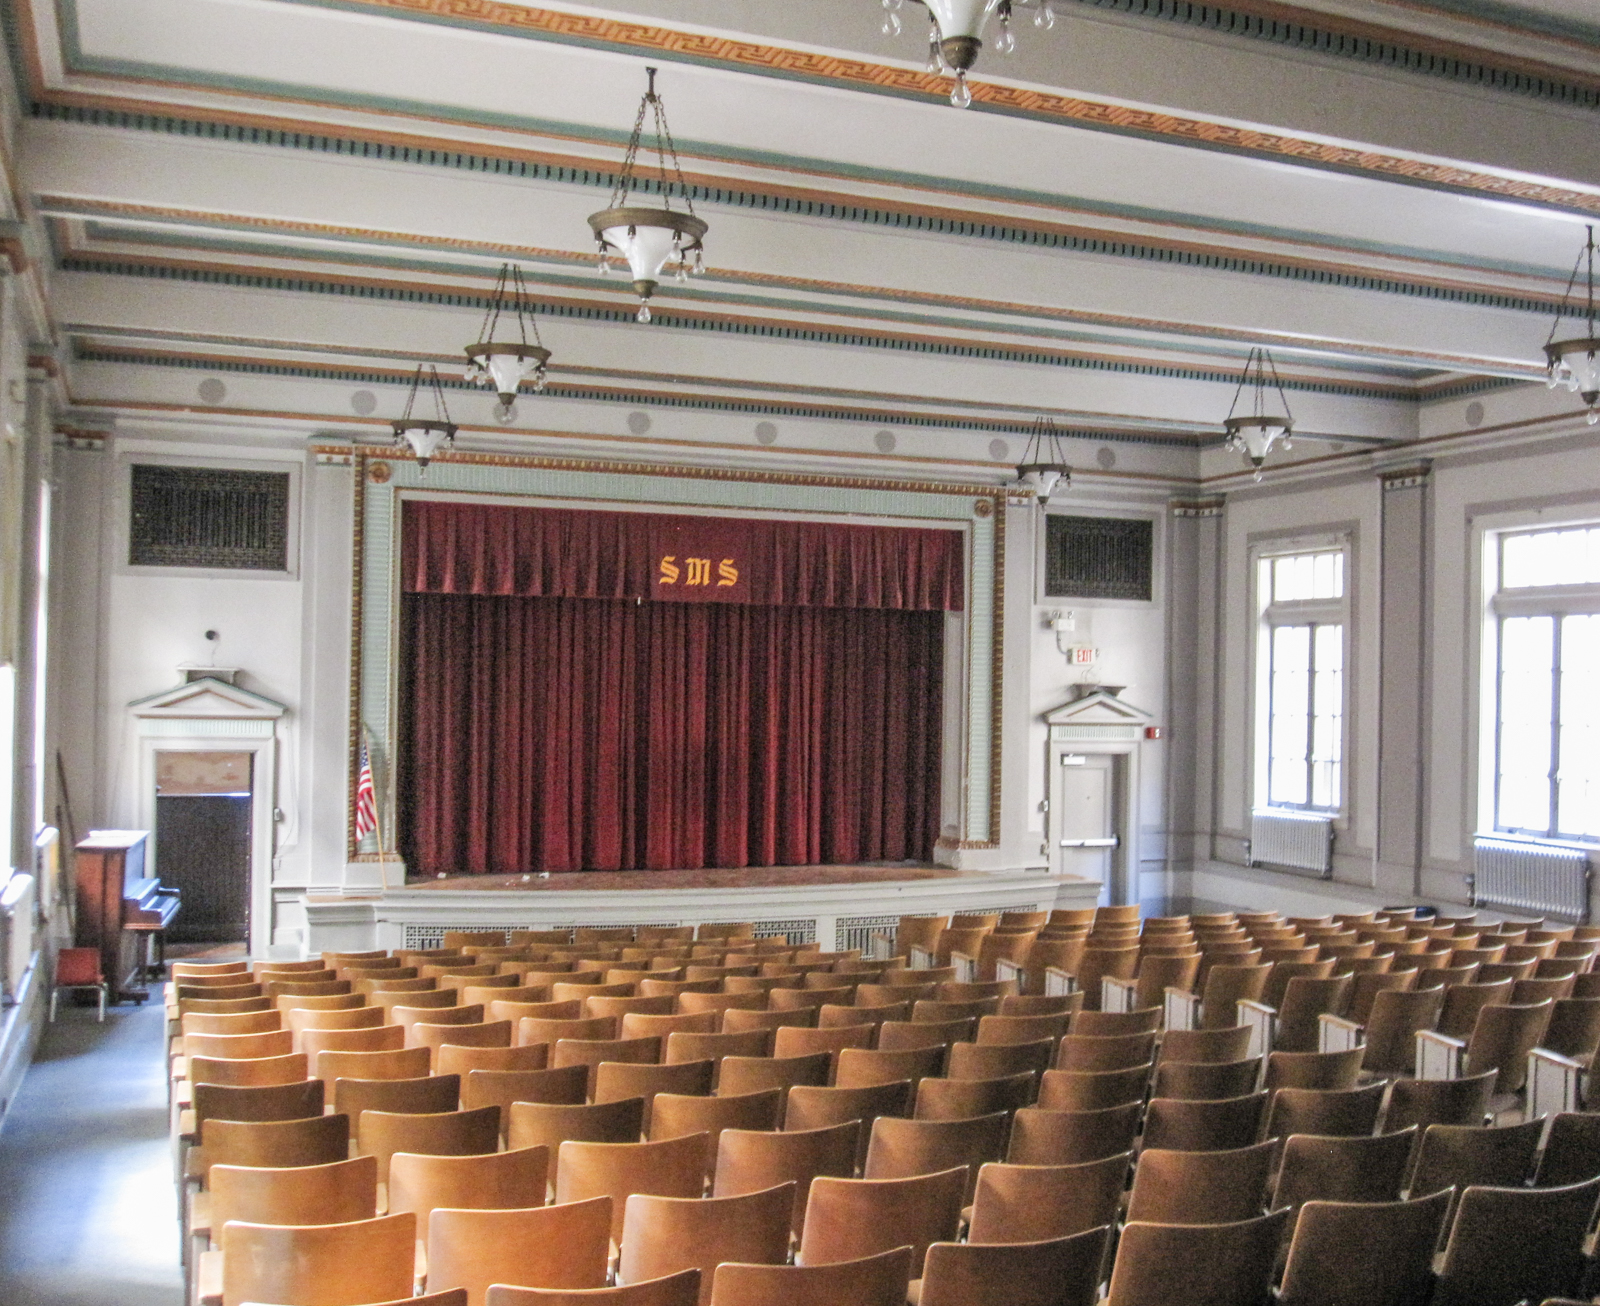 Sands Senior Historic Auditorium 1